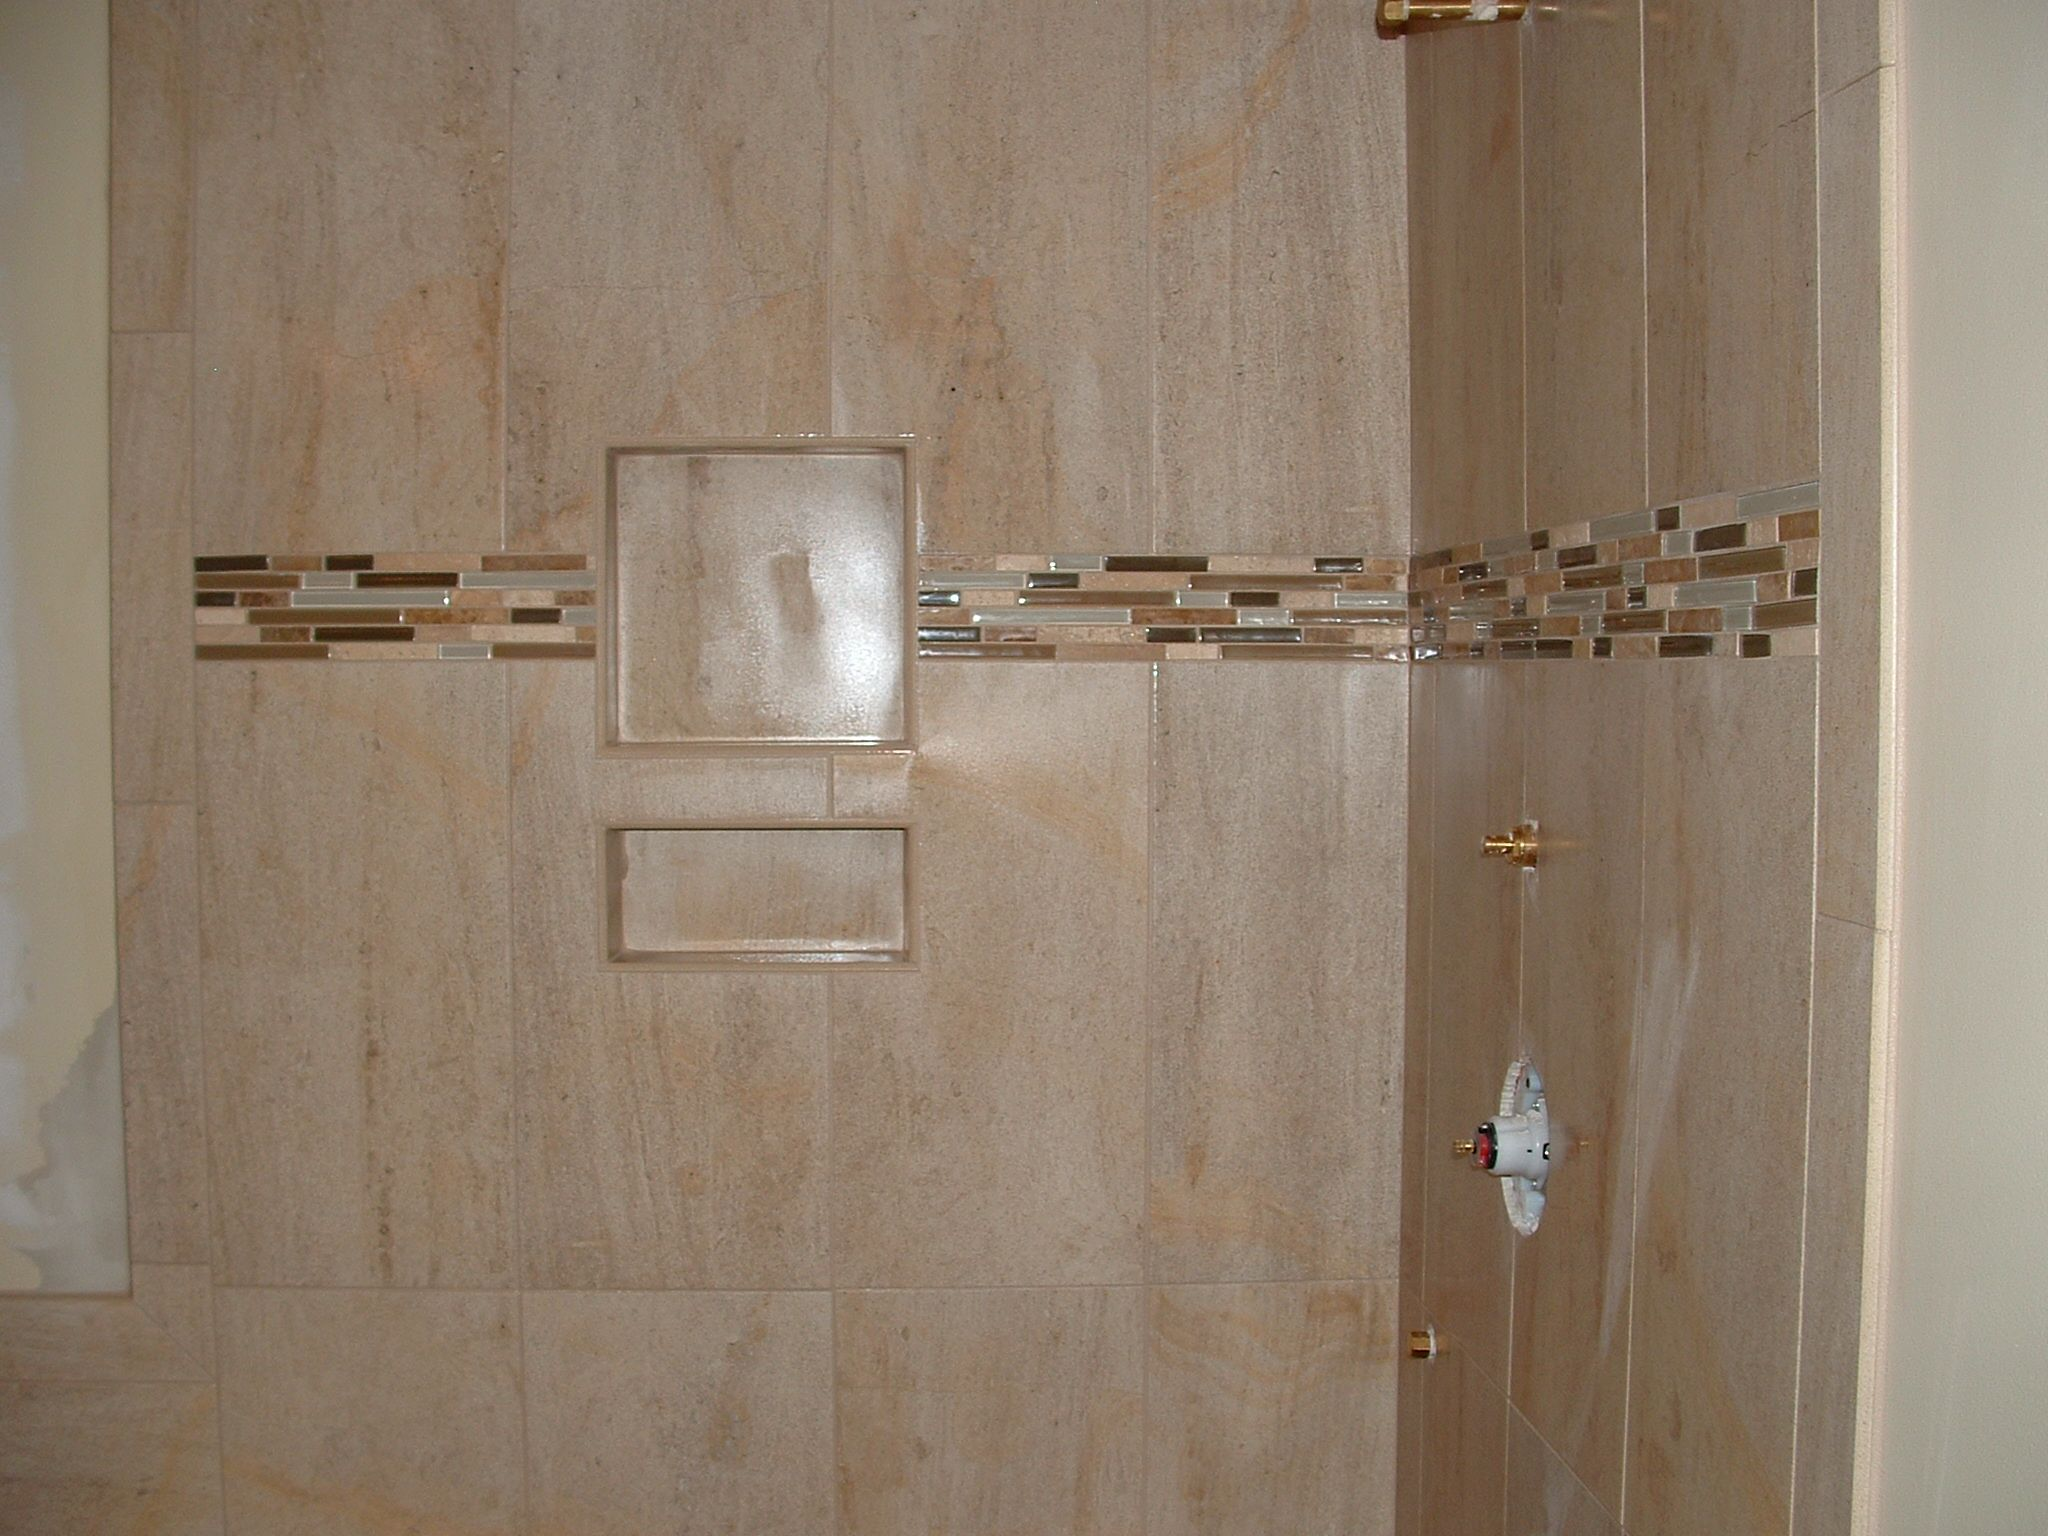 Mosaic Shower Ideas: Custom Tile Shower With Mosaic Border And Recessed Shelf